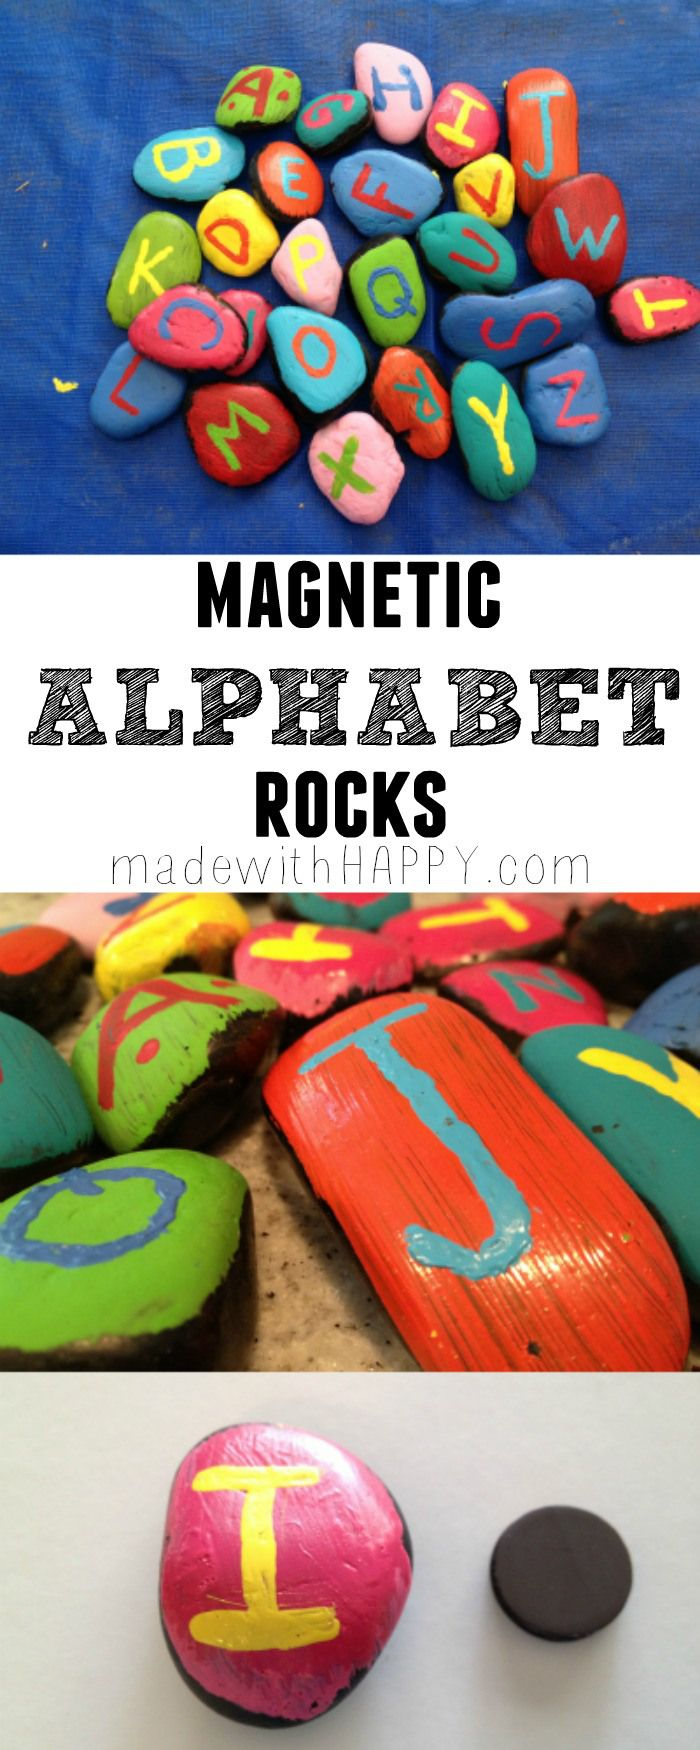 Magnetic Alphabet Rocks - Kids Crafts - Learning Letters - www.madewithHAPPY.com